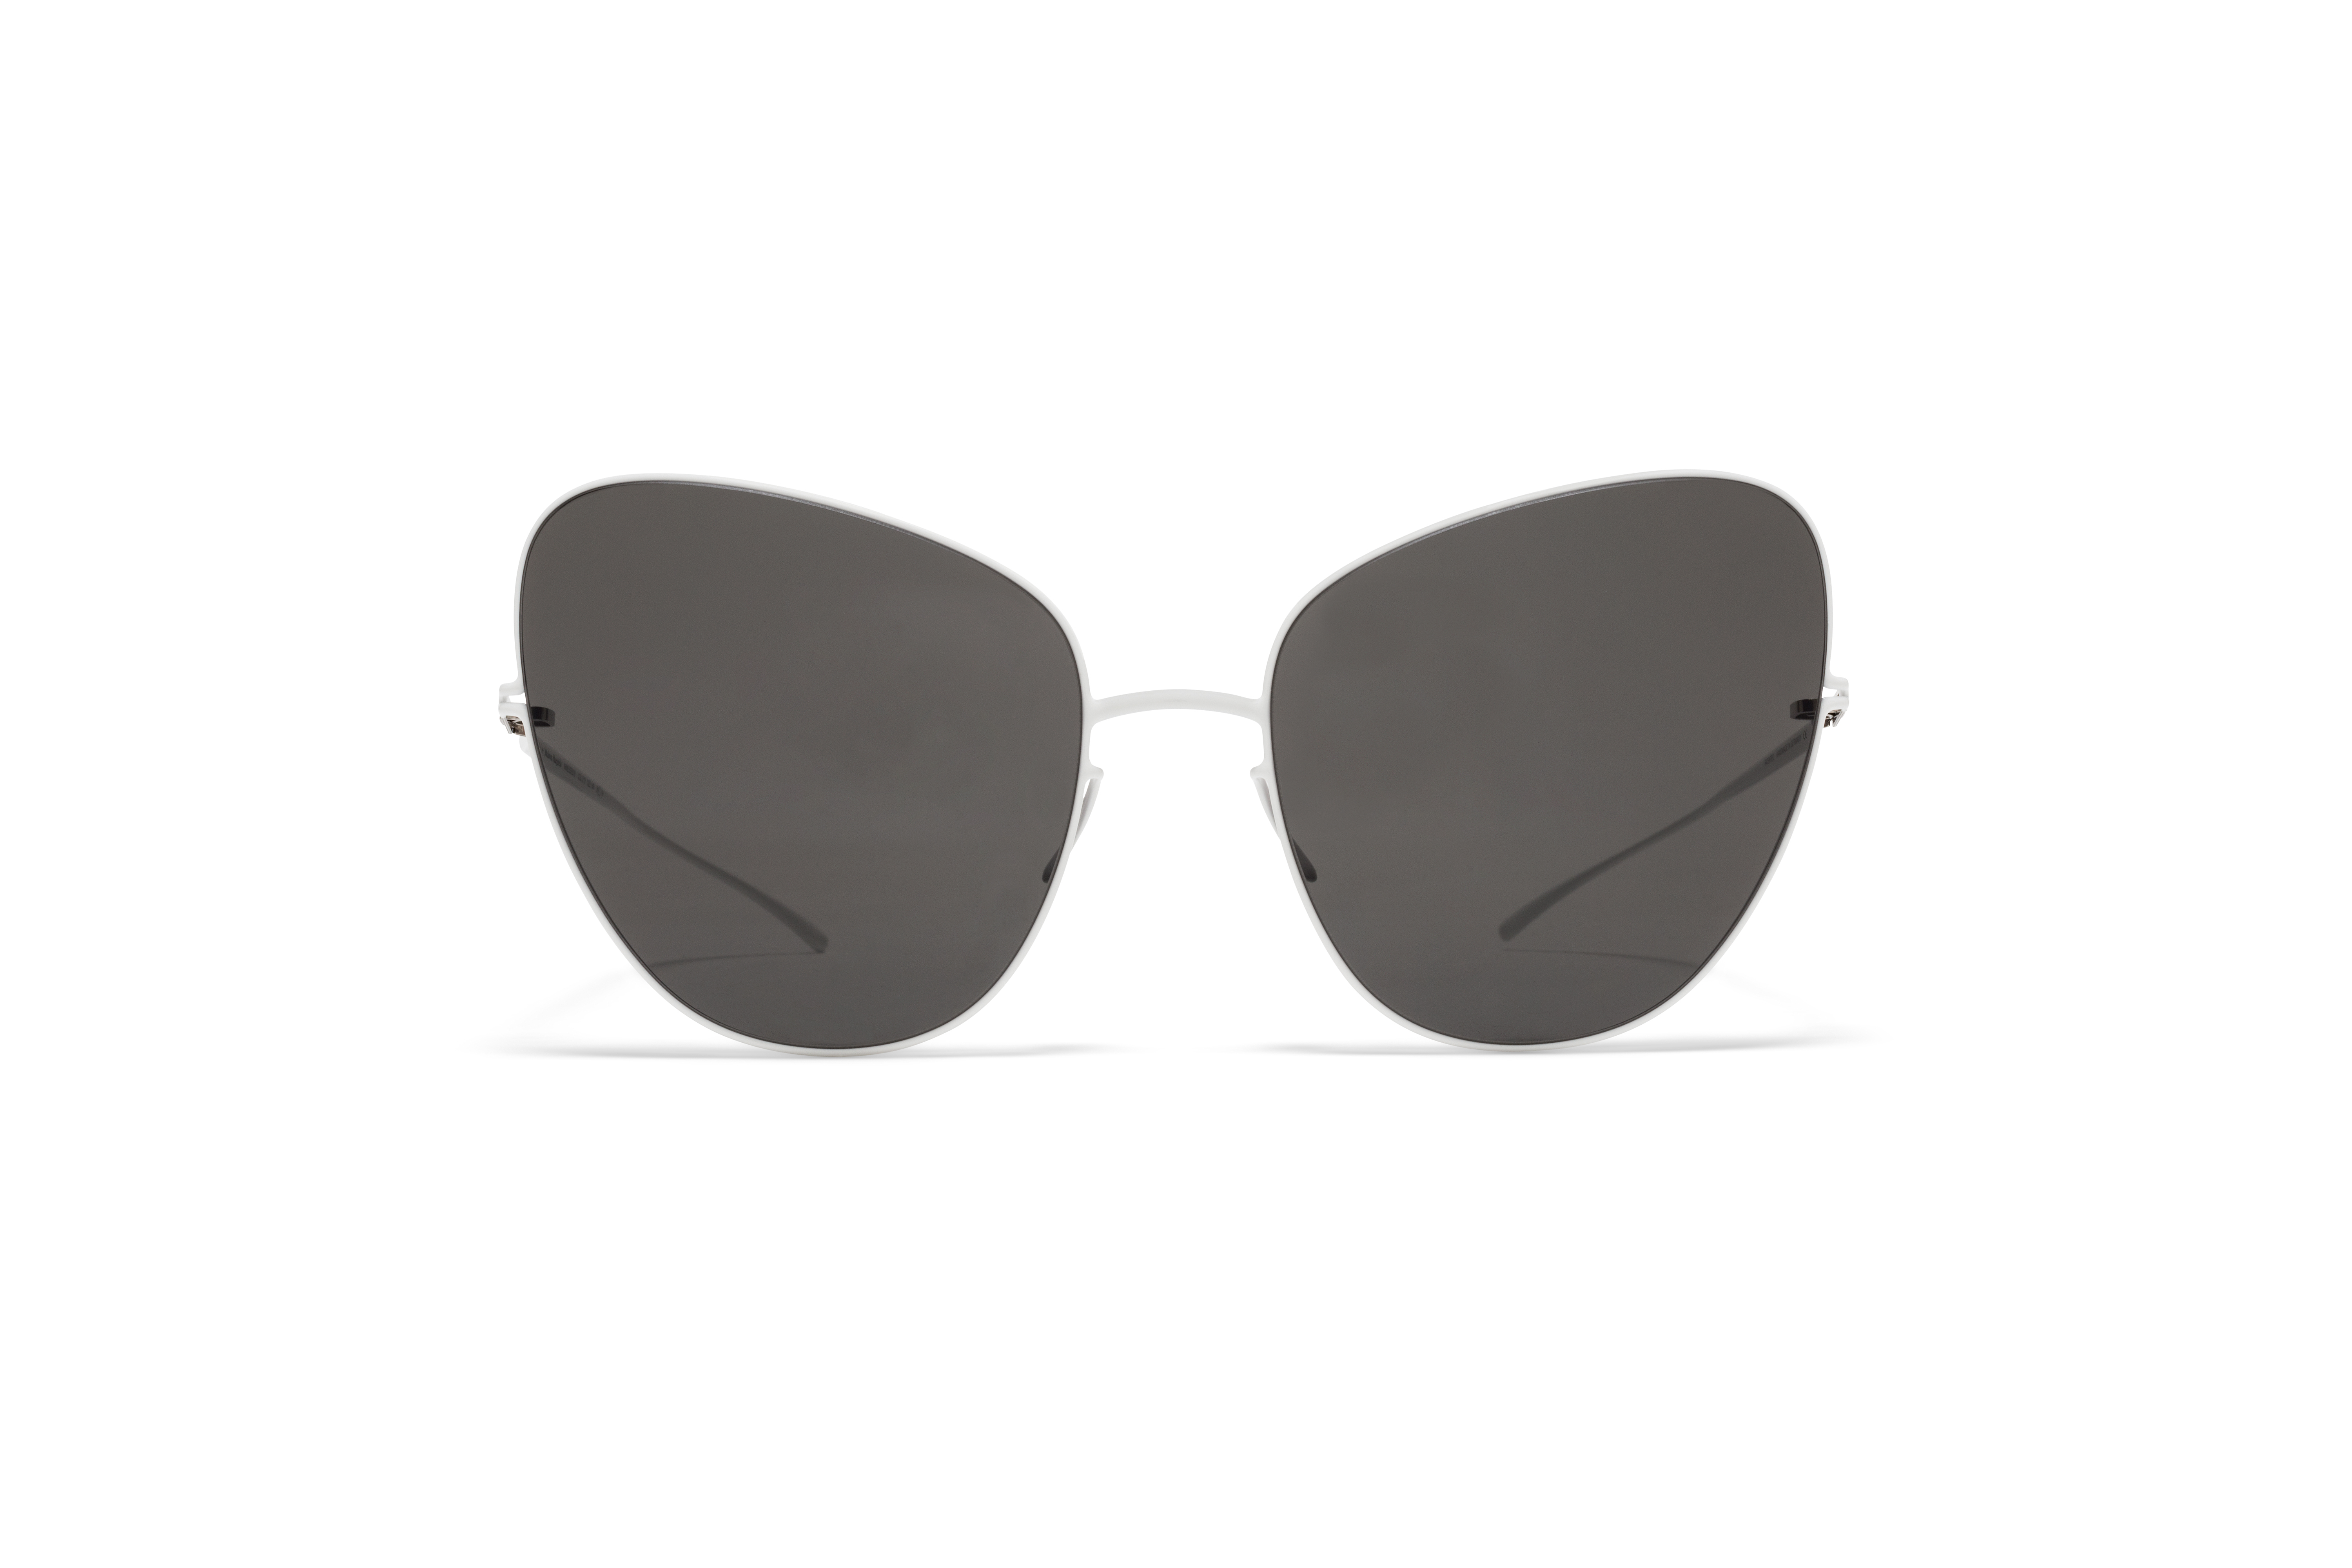 MYKITA Mm Sun Mmesse018 E13 White Dark Grey Soli59fb23e95fb48